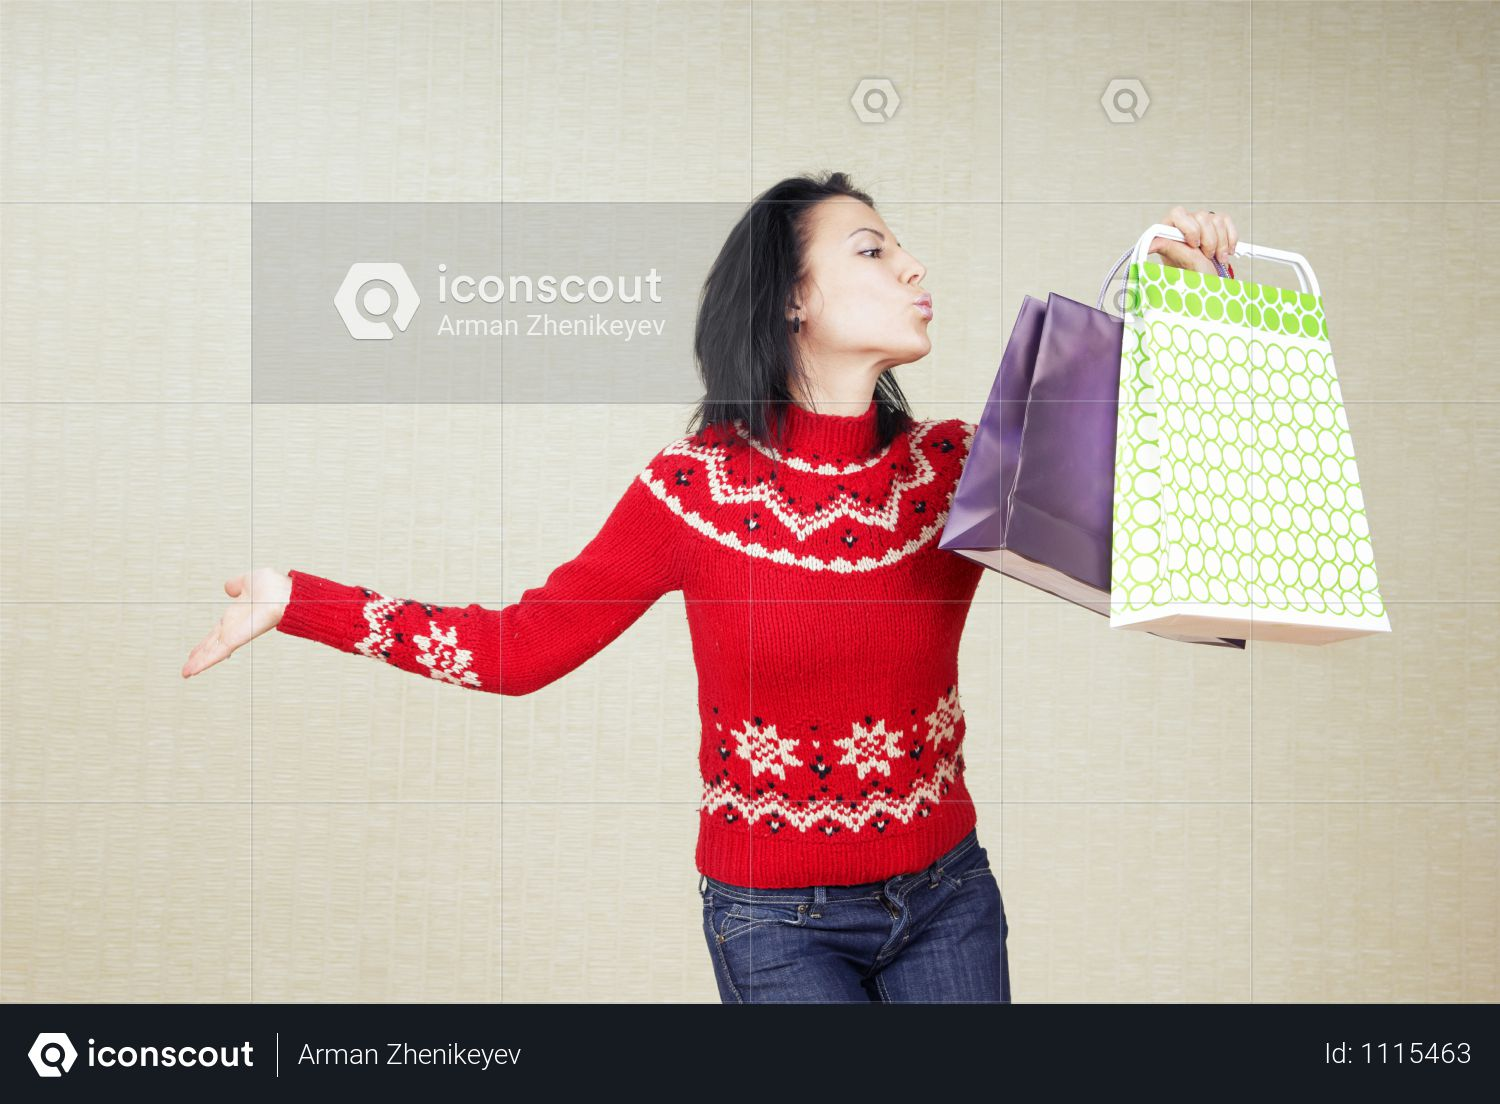 Premium Playful Lady With Gift Bags In The Red Sweater Photo Download In Png Jpg Format